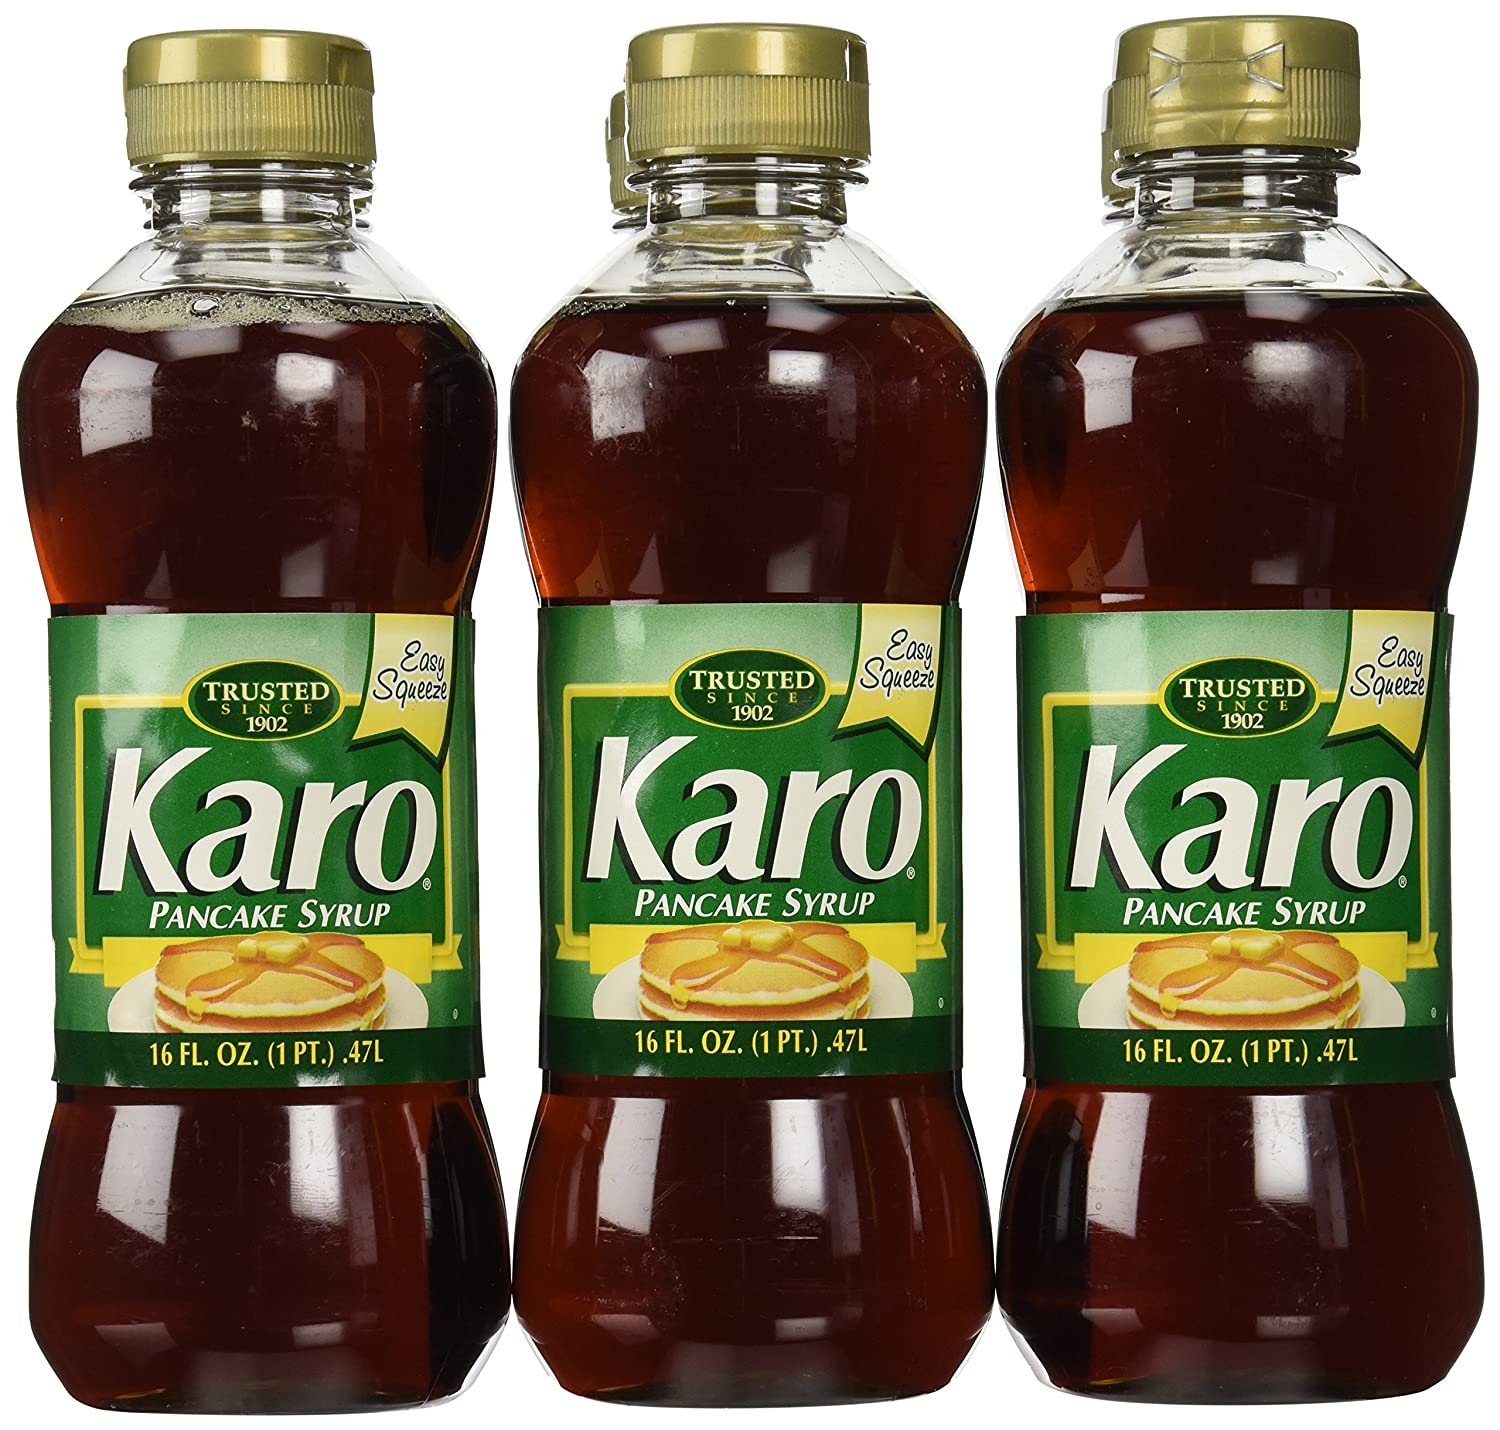 a4df66ea9da Amazon.com   Karo Pancake Syrup 16 oz. Green Label - 6 Unit Pack   Maple  Syrups   Grocery   Gourmet Food